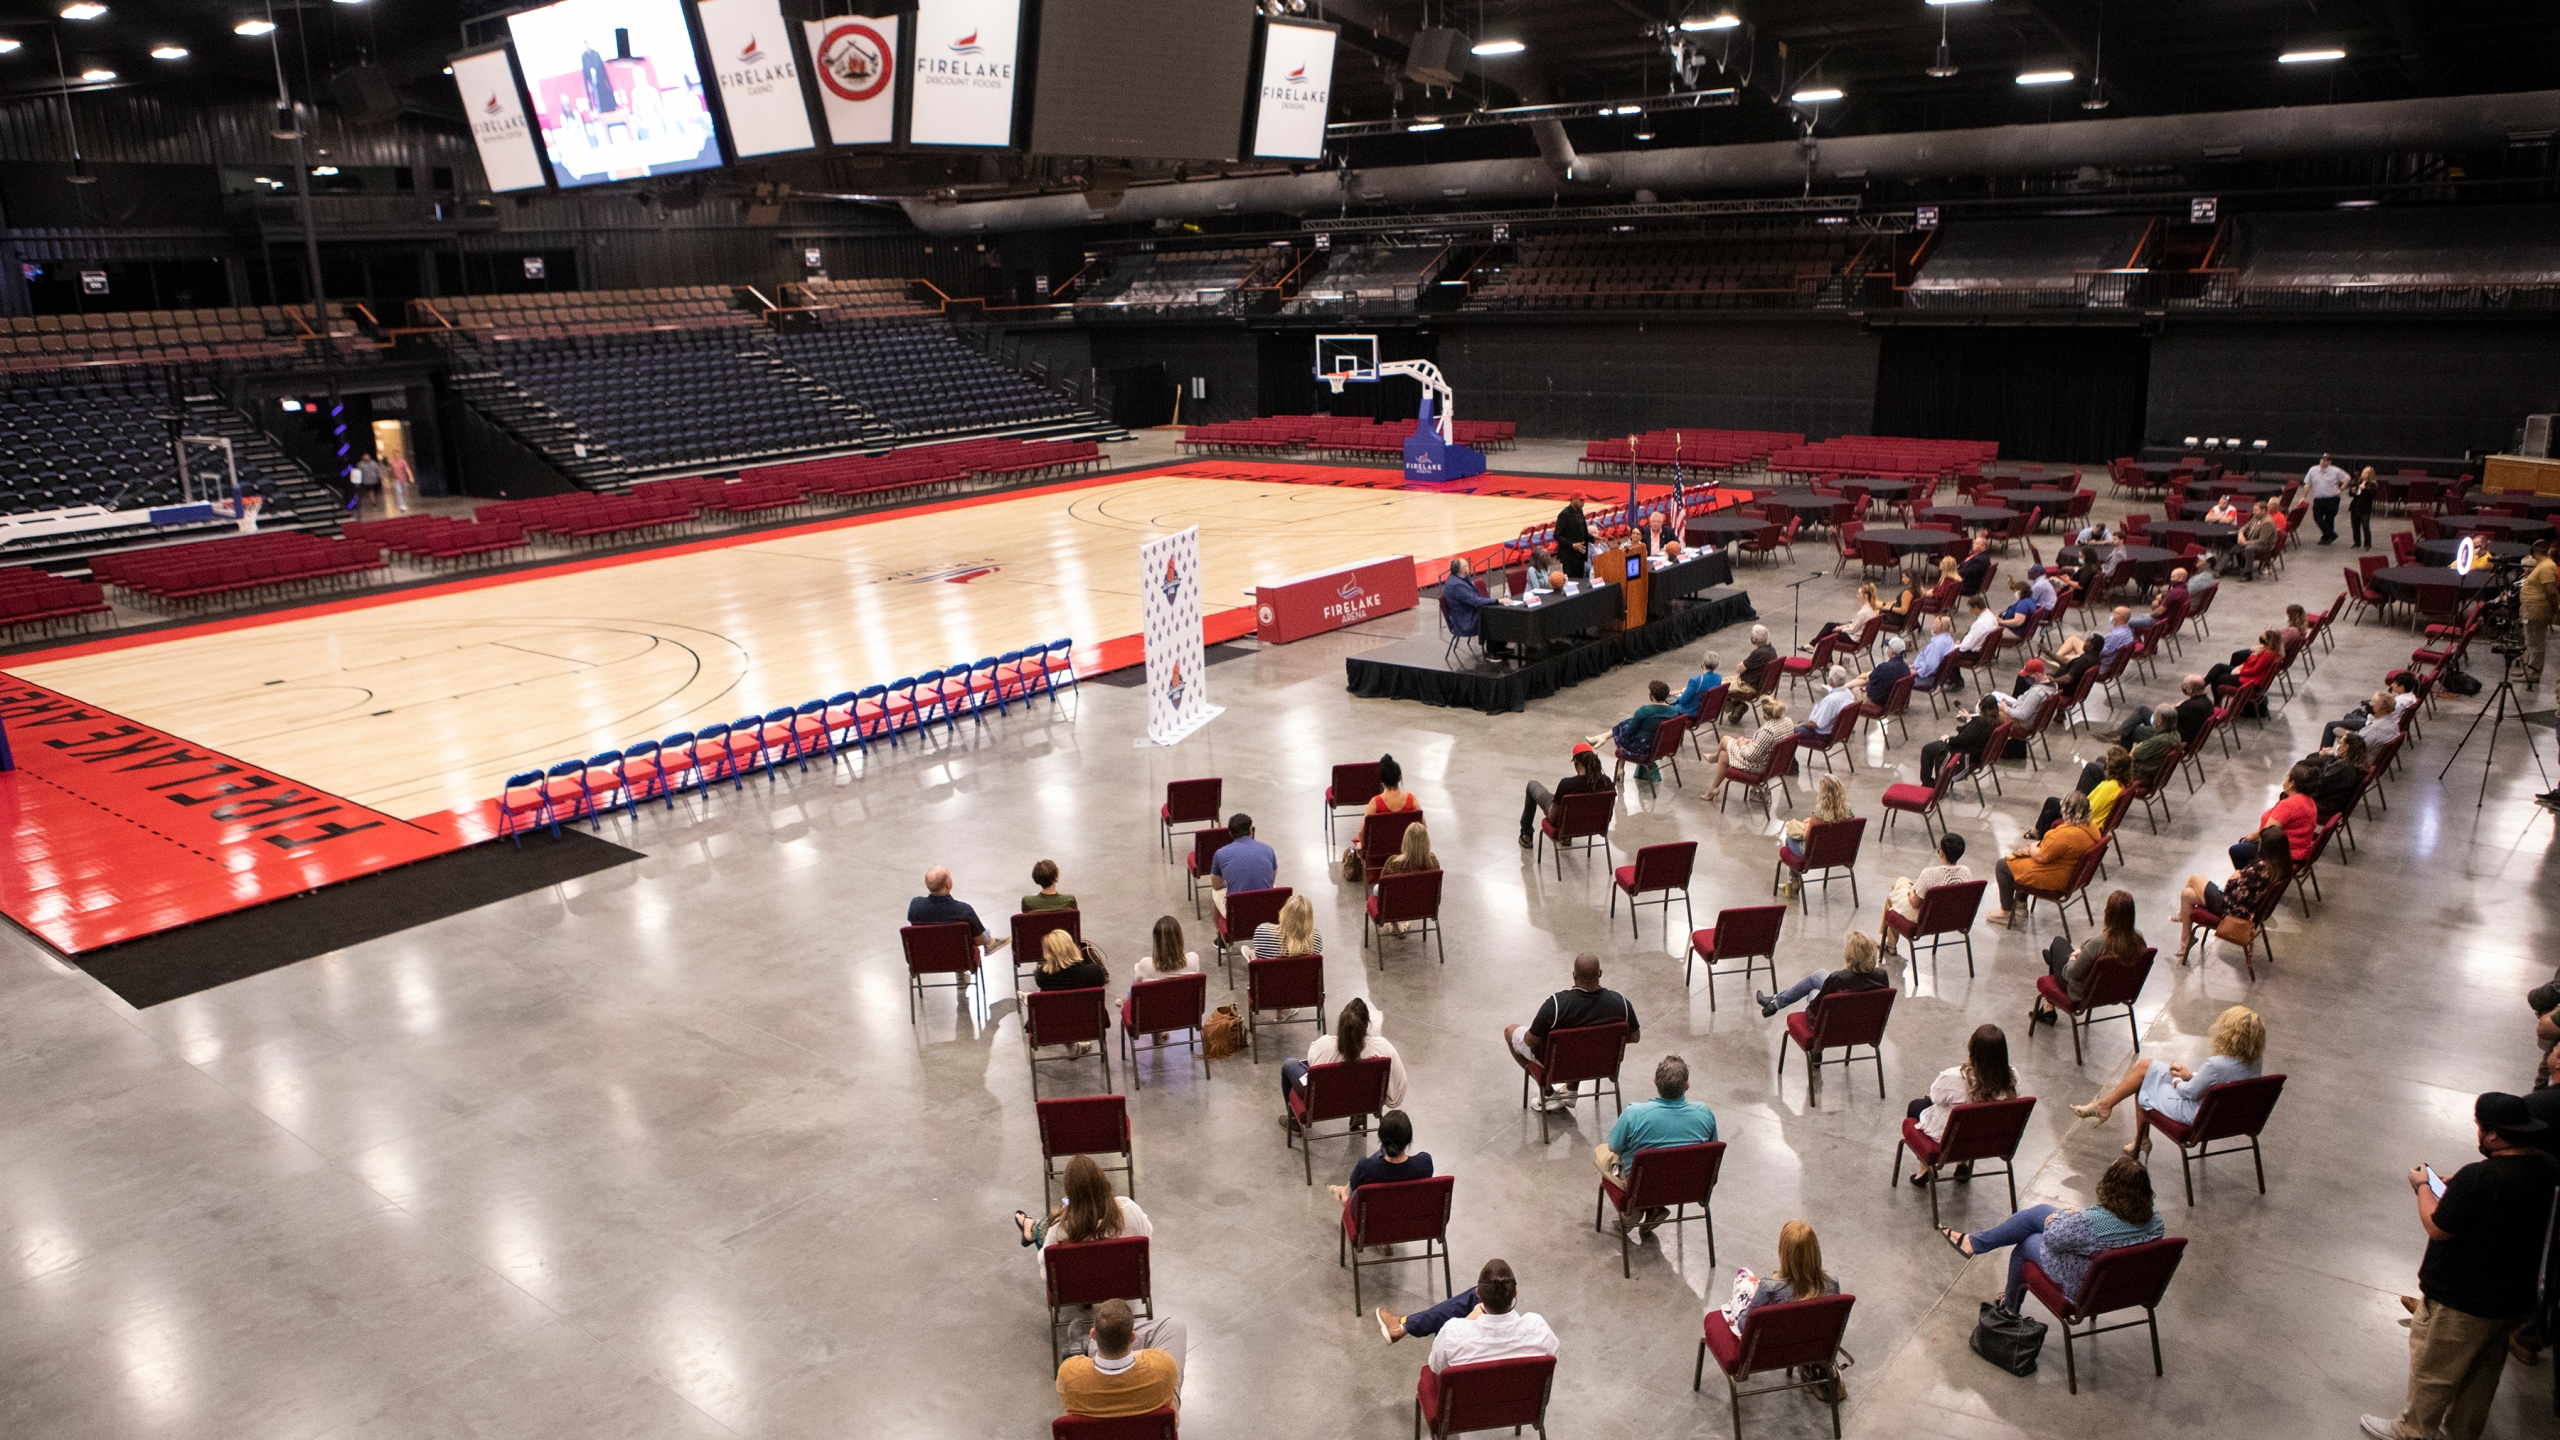 Press conference announcing the Potawatomi Fire basketball team at FireLake Arena in Shawnee, Okla., Wednesday, Sept. 29, 2021.